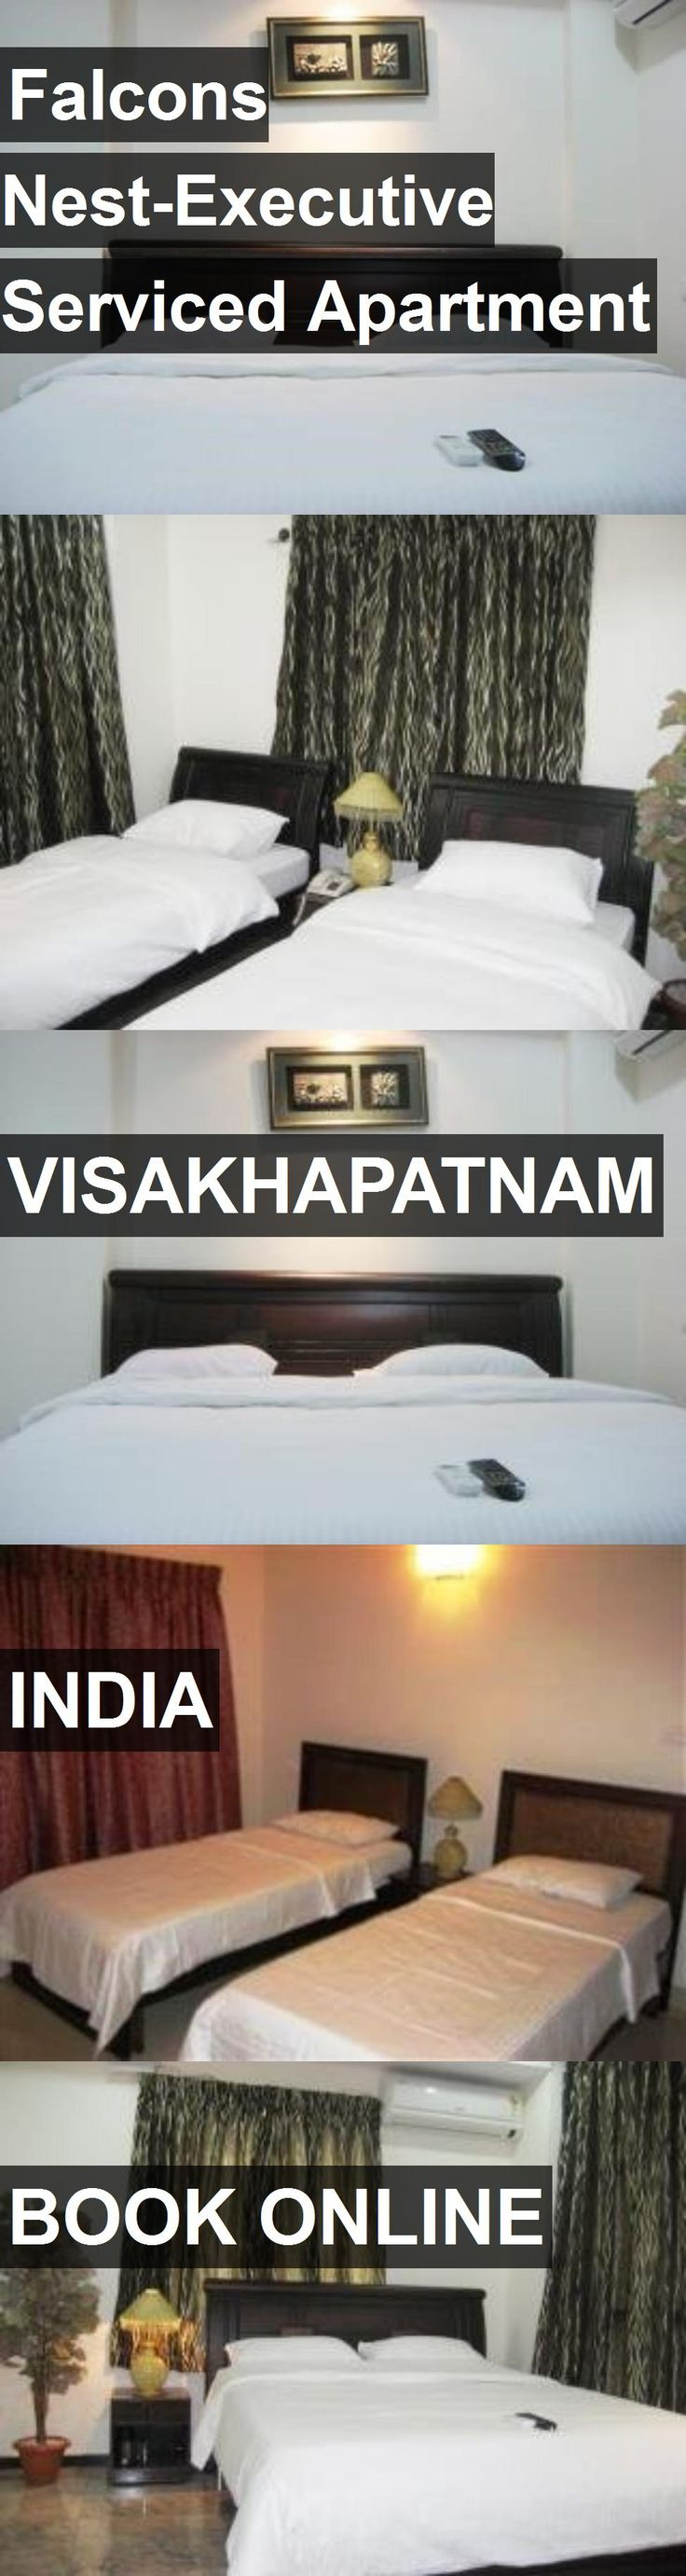 Falcons Nest-Executive Serviced Apartment in Visakhapatnam, India. For more information, photos, reviews and best prices please follow the link. #India #Visakhapatnam #travel #vacation #apartment